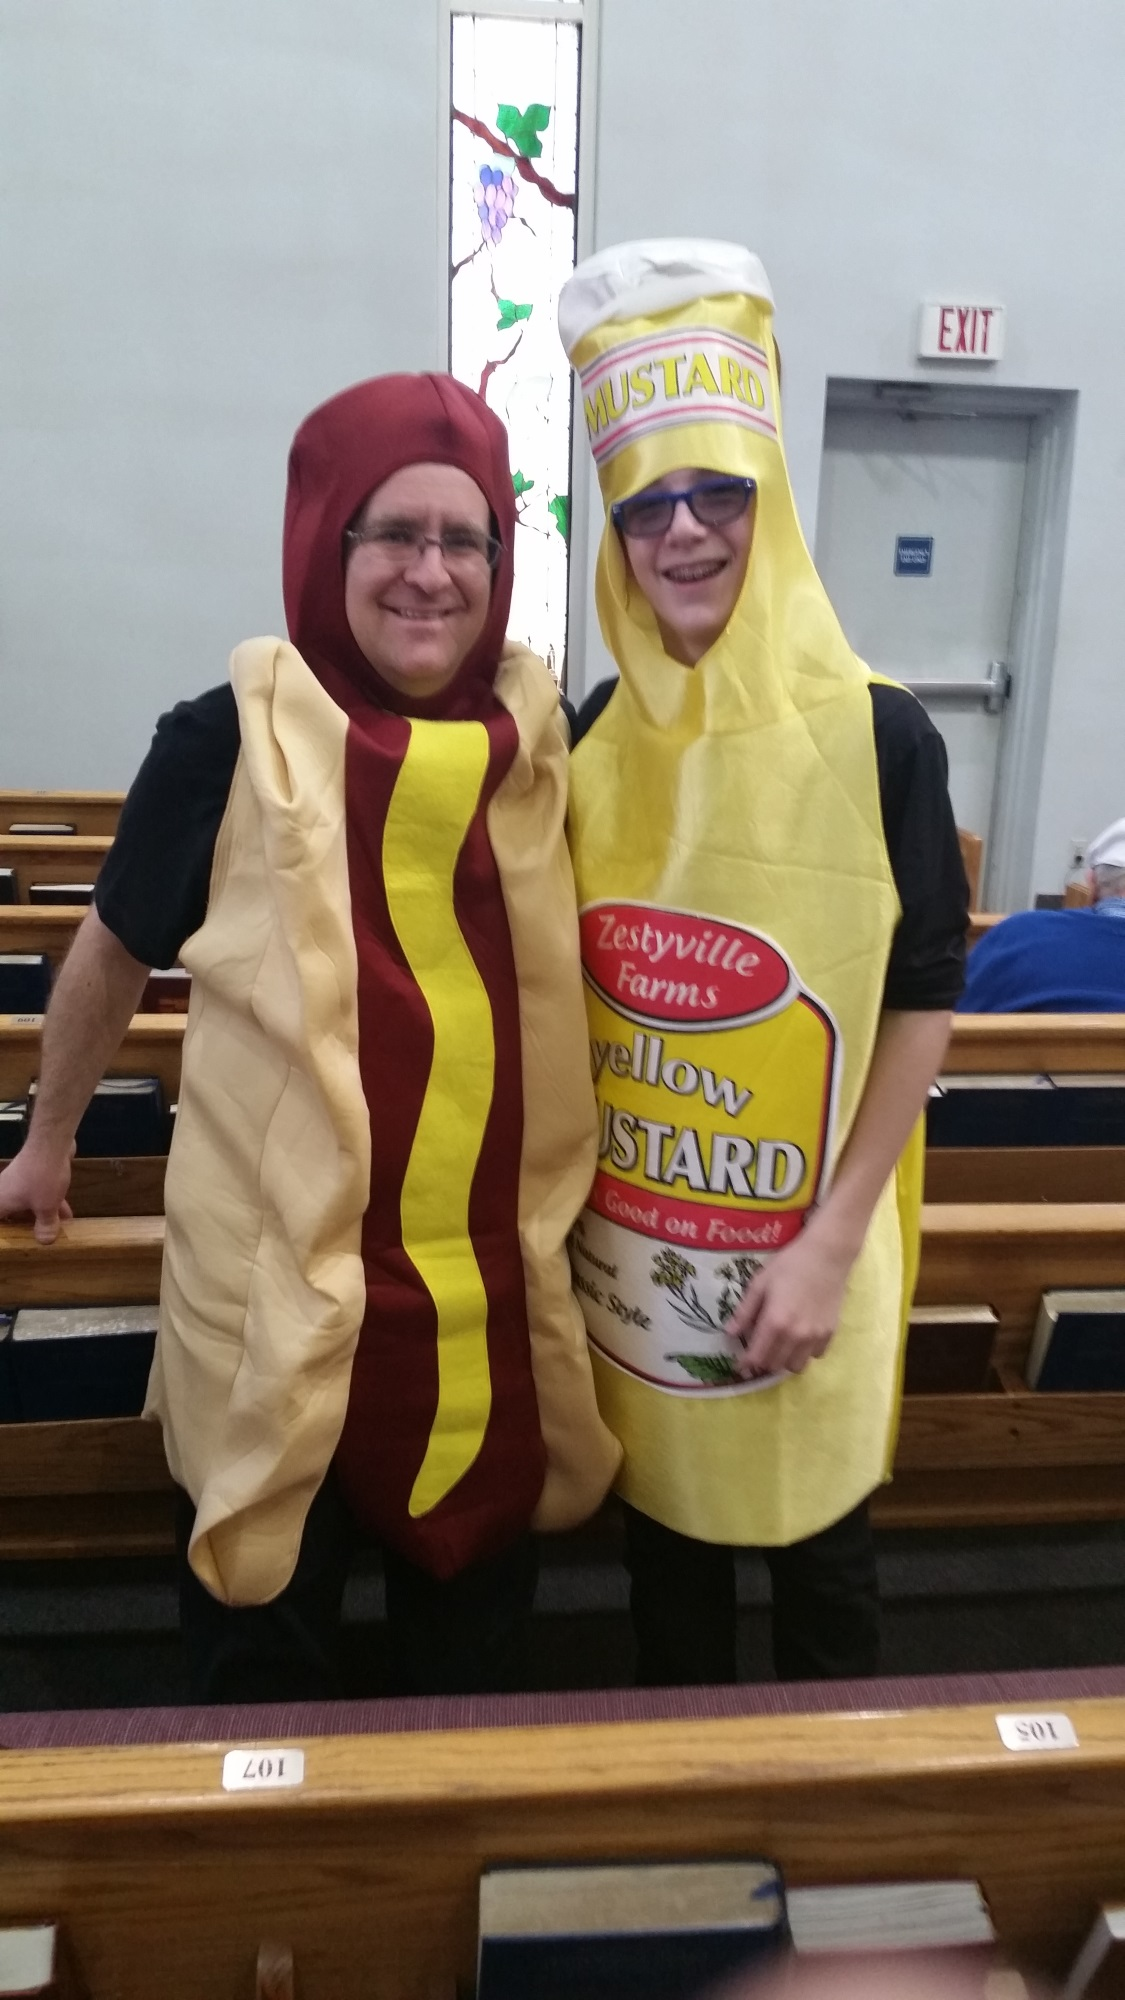 hot-dog-with-mustard-1809d1be64e999795de6111c21702cb44a6312bc